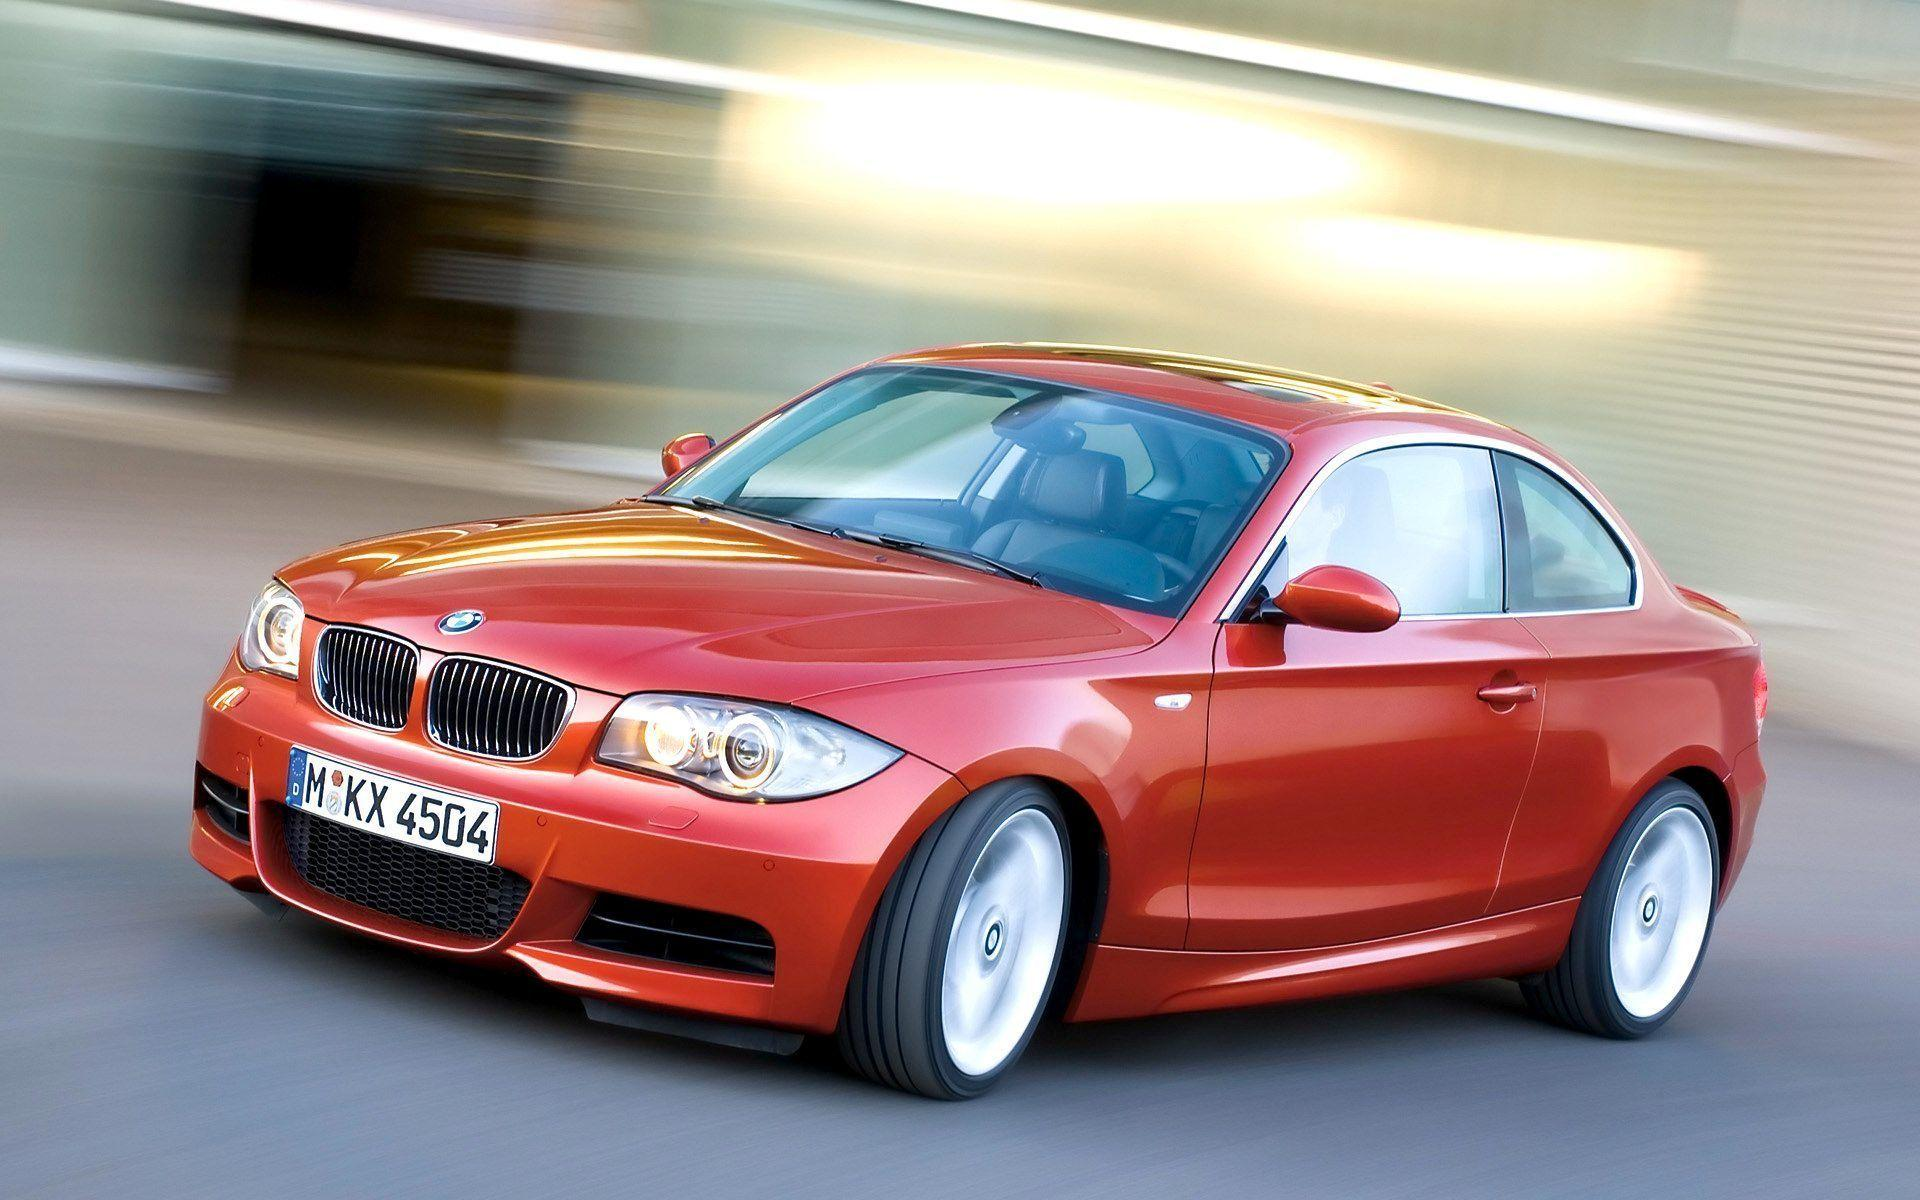 2008 BMW 1 Series Coupe Wallpaper 09 - 1920x1200